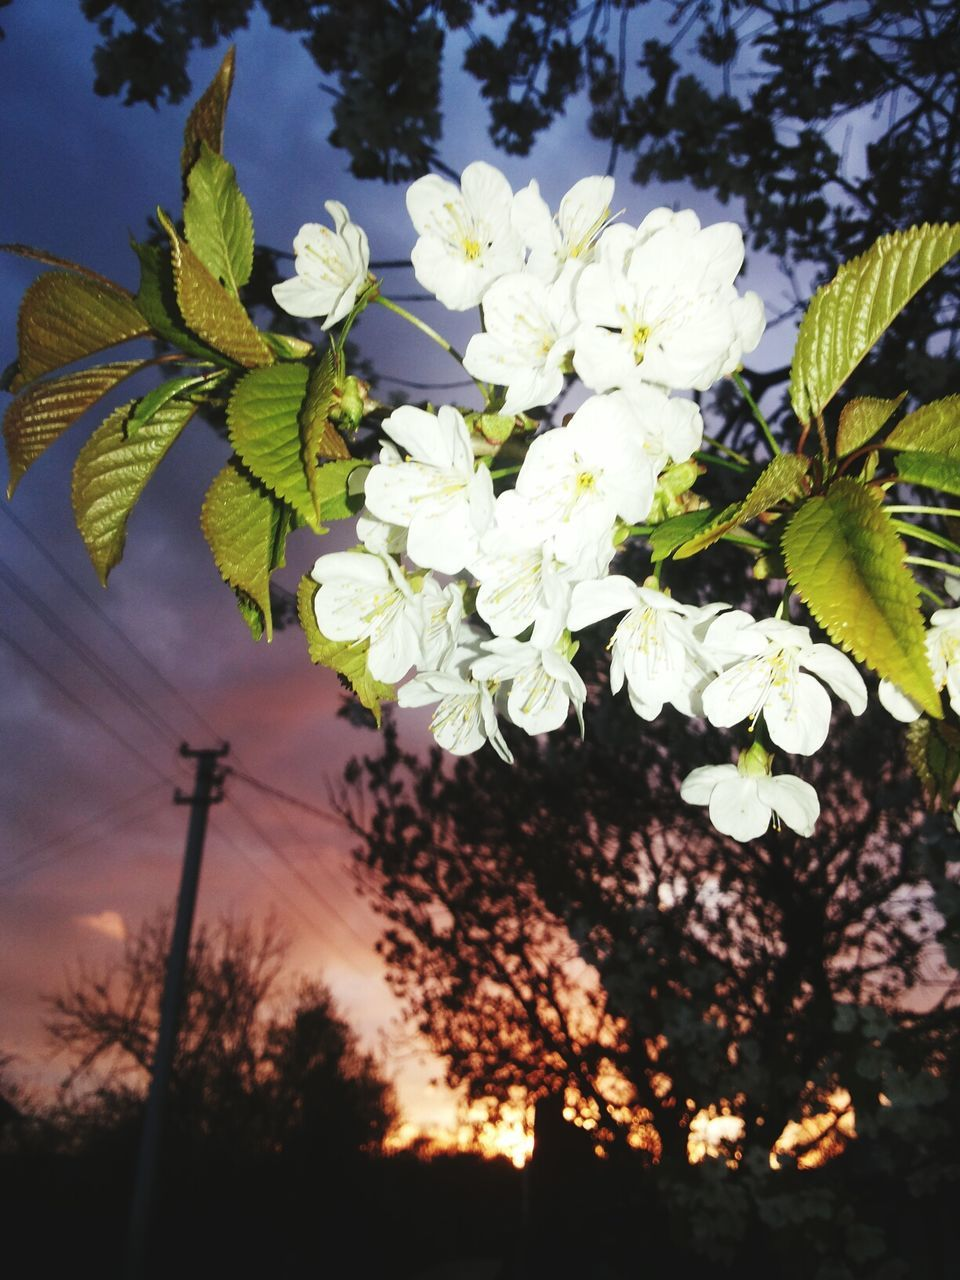 growth, flower, nature, tree, beauty in nature, blossom, fragility, no people, plant, spring, outdoors, blooming, freshness, branch, sky, day